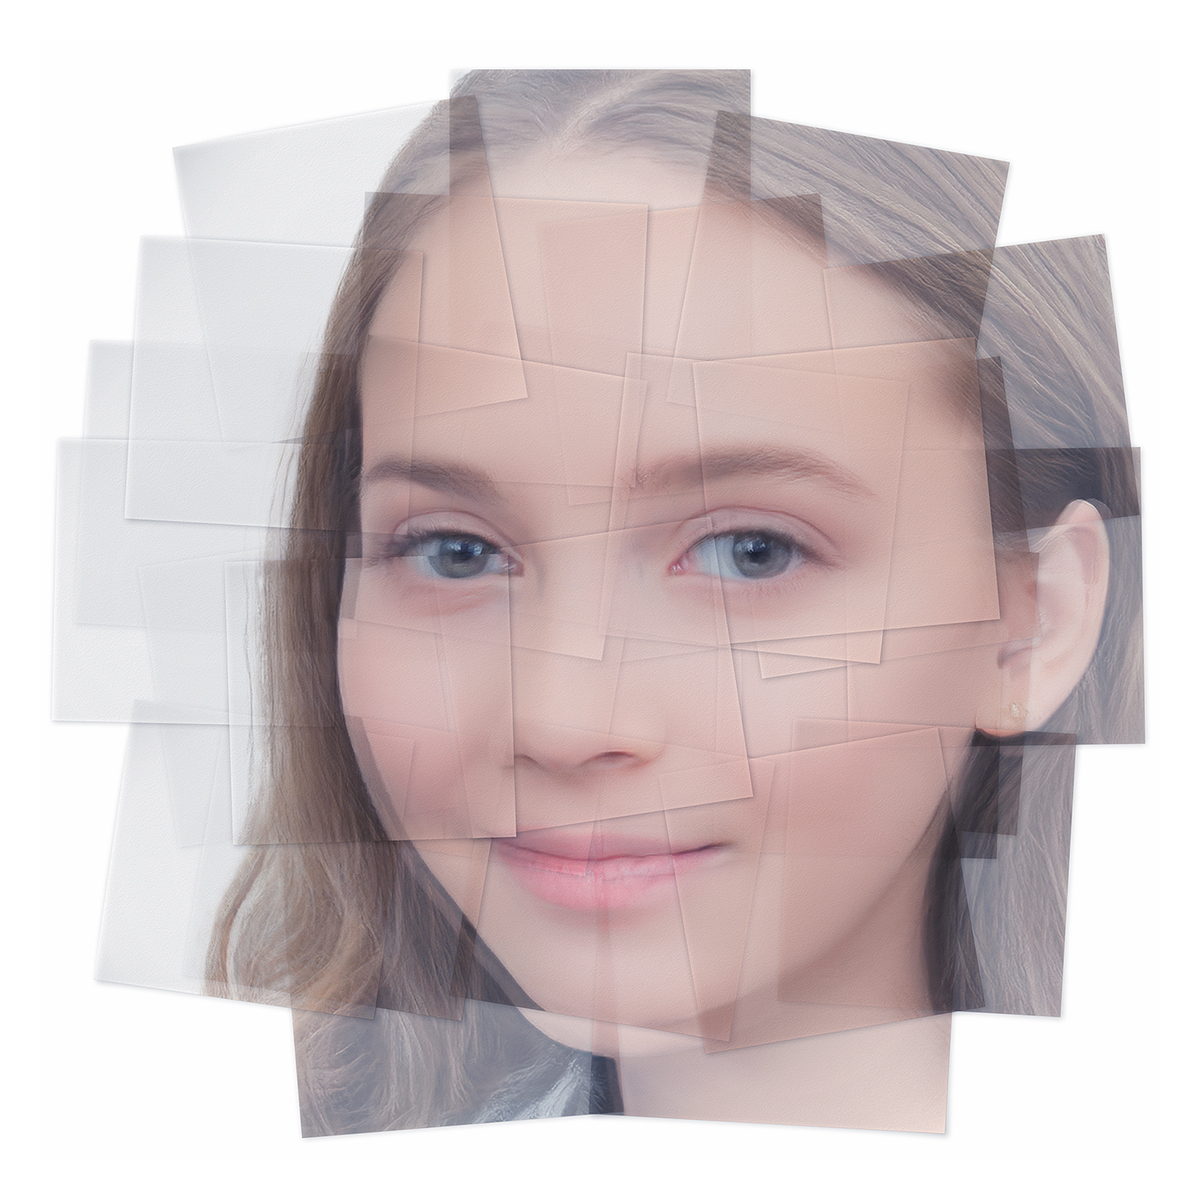 Generated Faces by Artificial Intelligence Teens 009 1 - 2019 - Generated Faces by Artificial Intelligence. Teens. V1